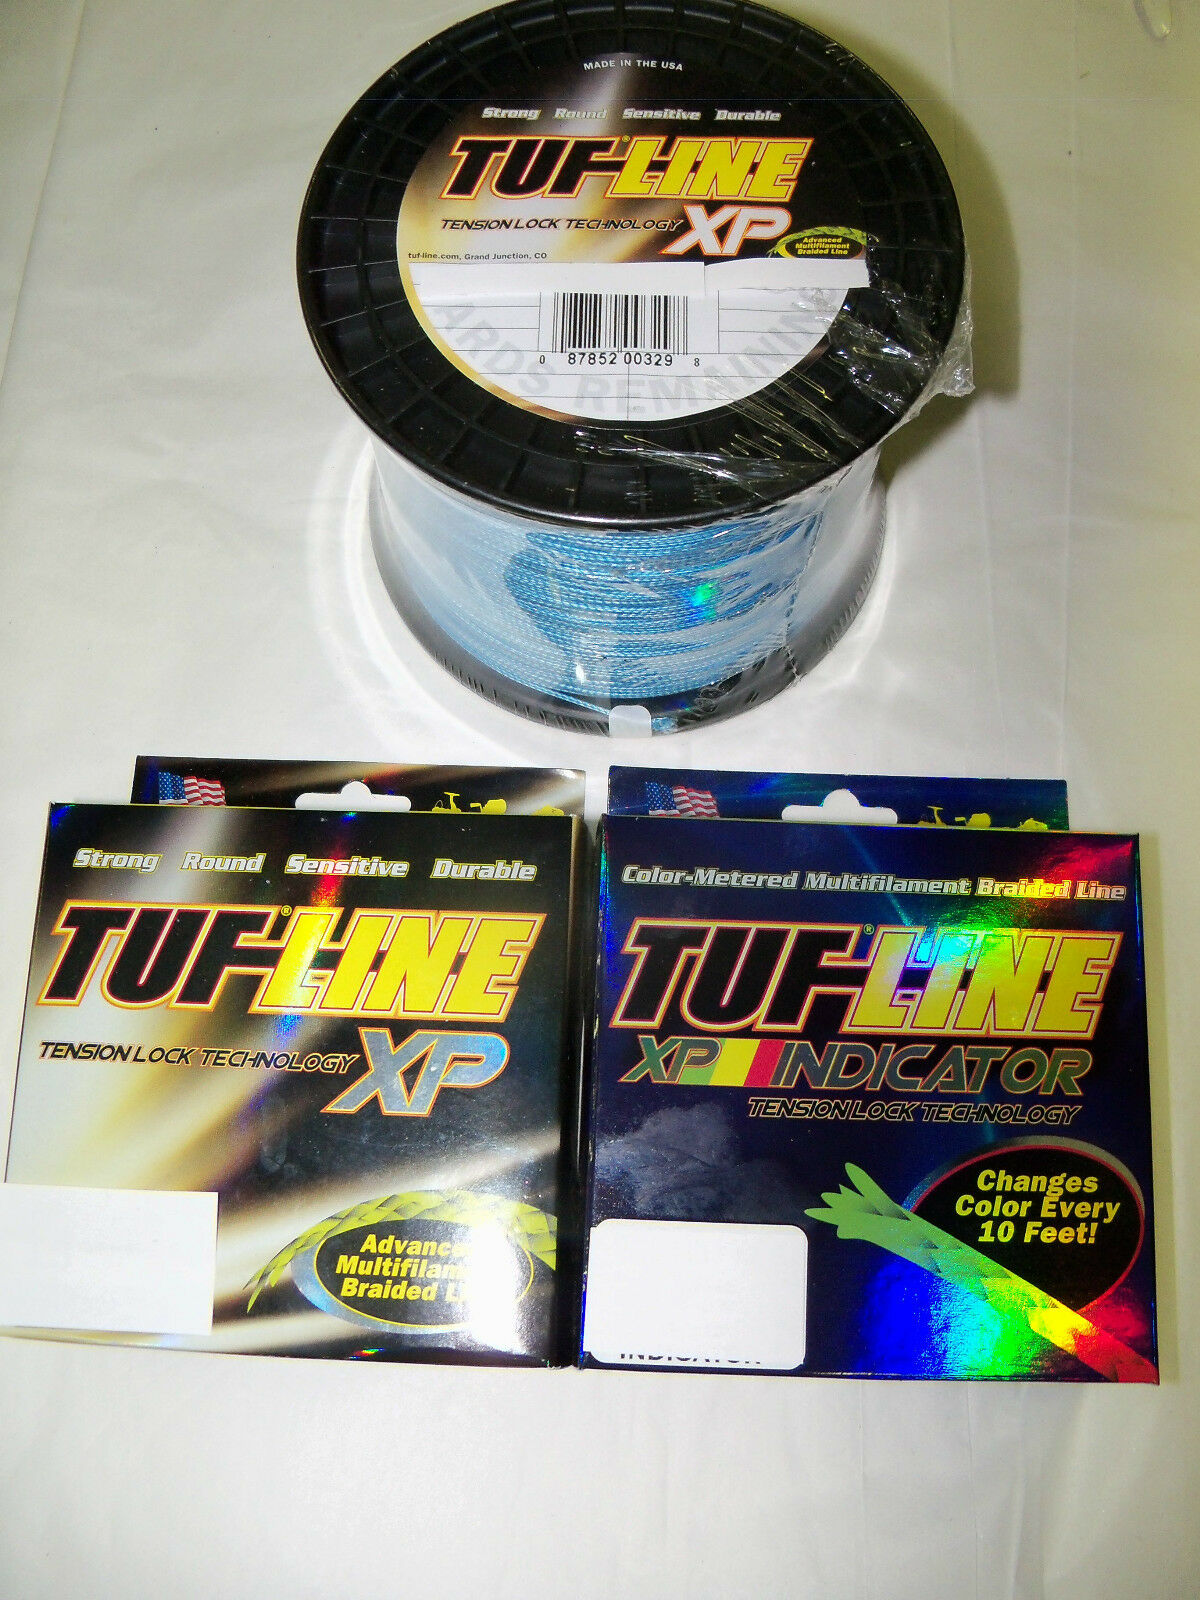 TUF LINE XP - 40 LB - PREMIUM SUPER BRAID - 300 YARDS